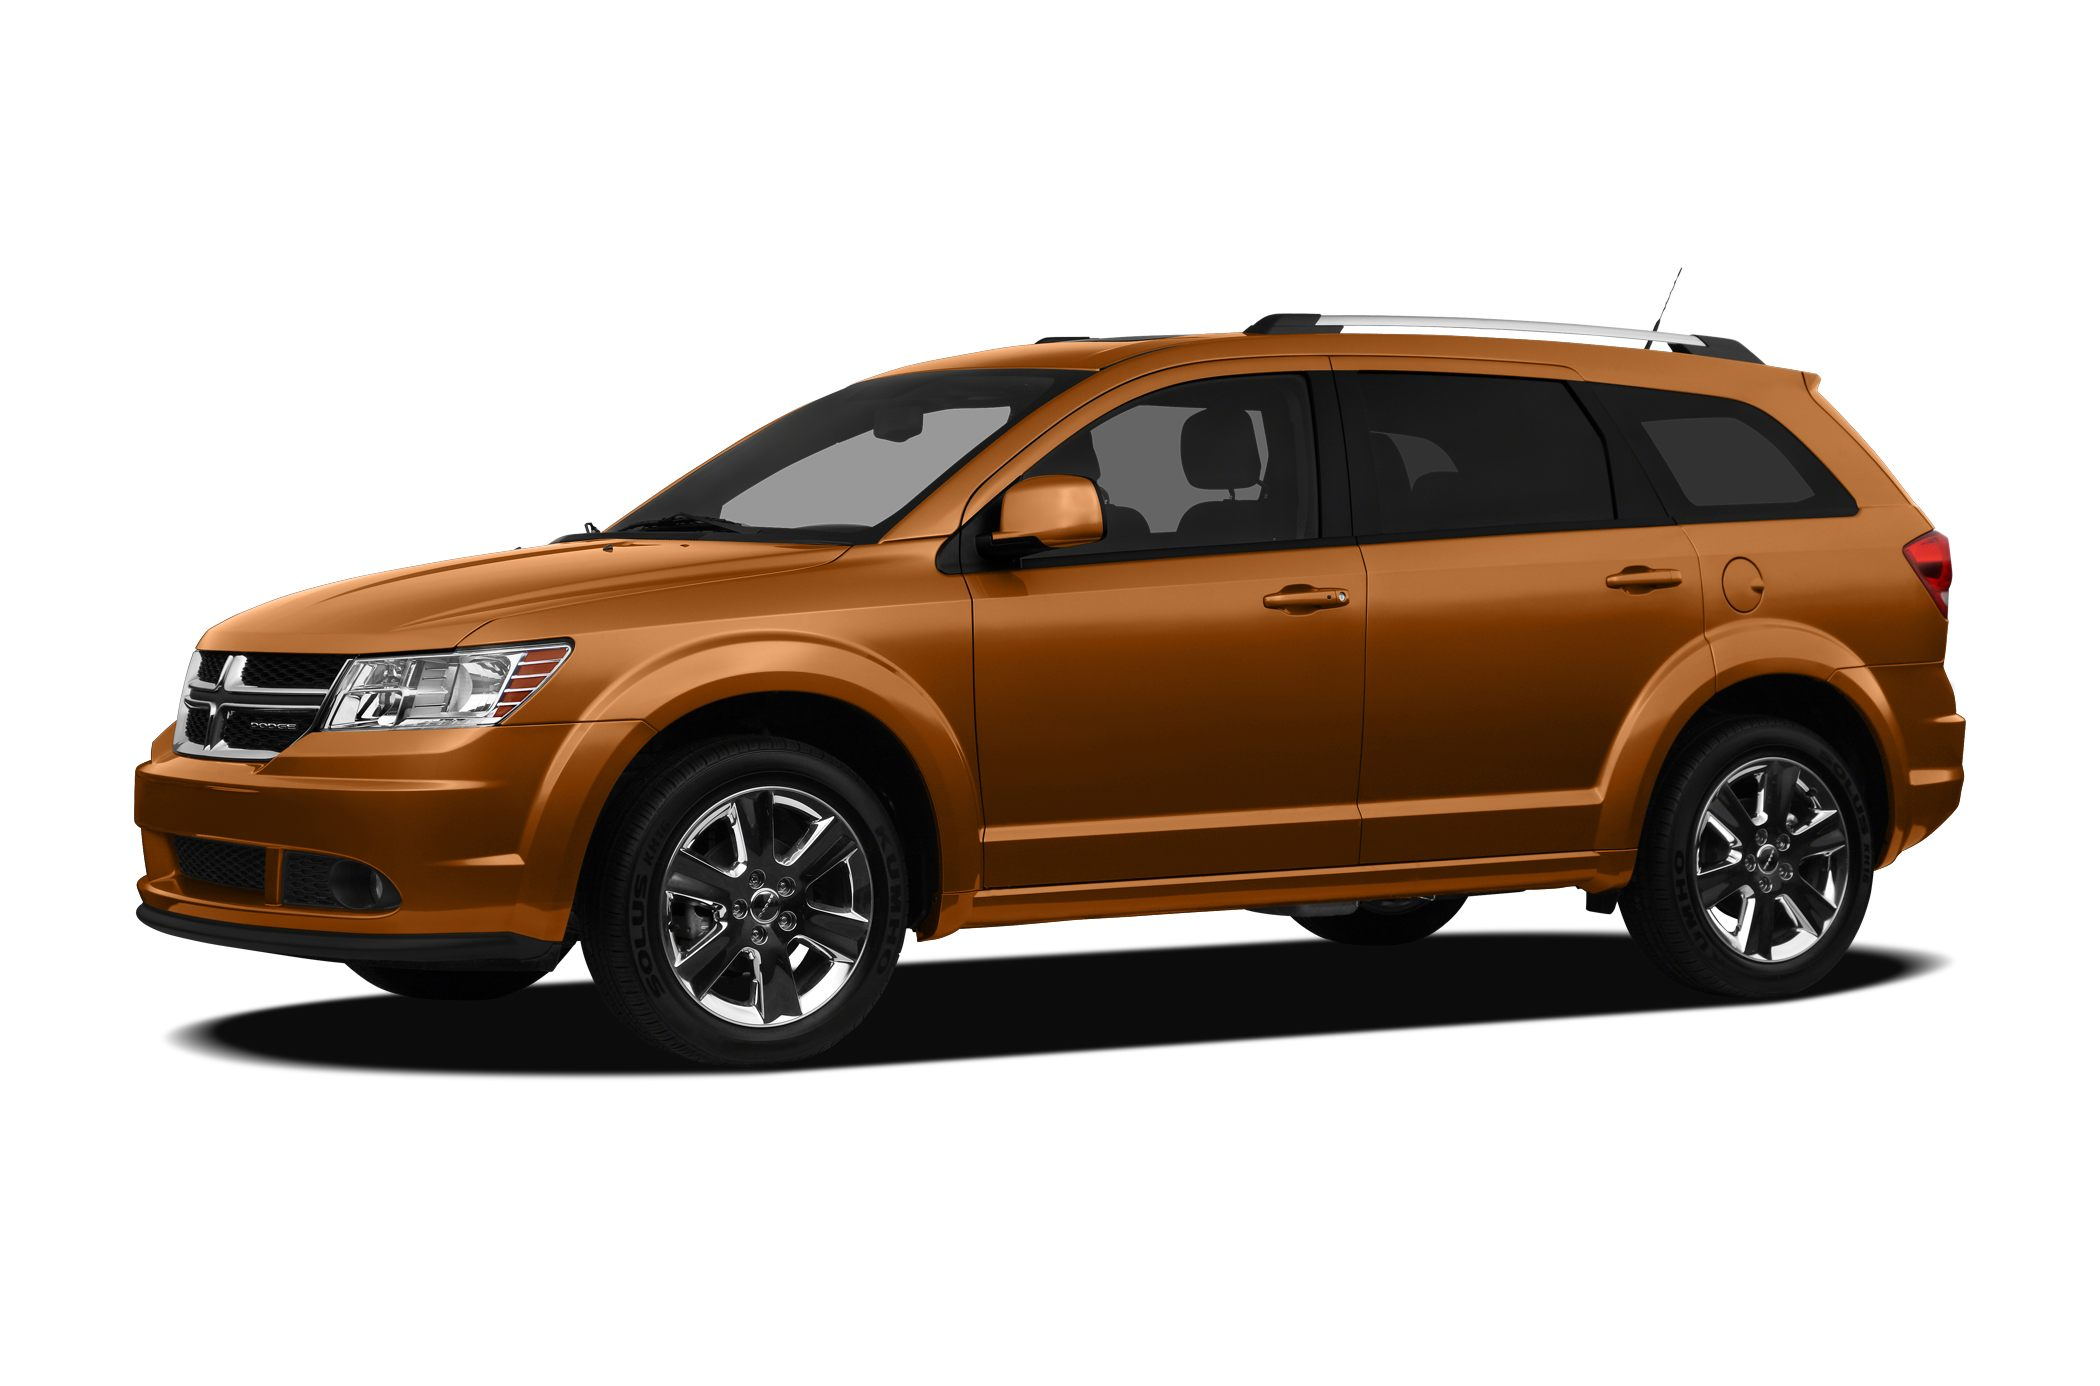 2011 Dodge Journey Lux SUV for sale in New Bern for $19,988 with 73,227 miles